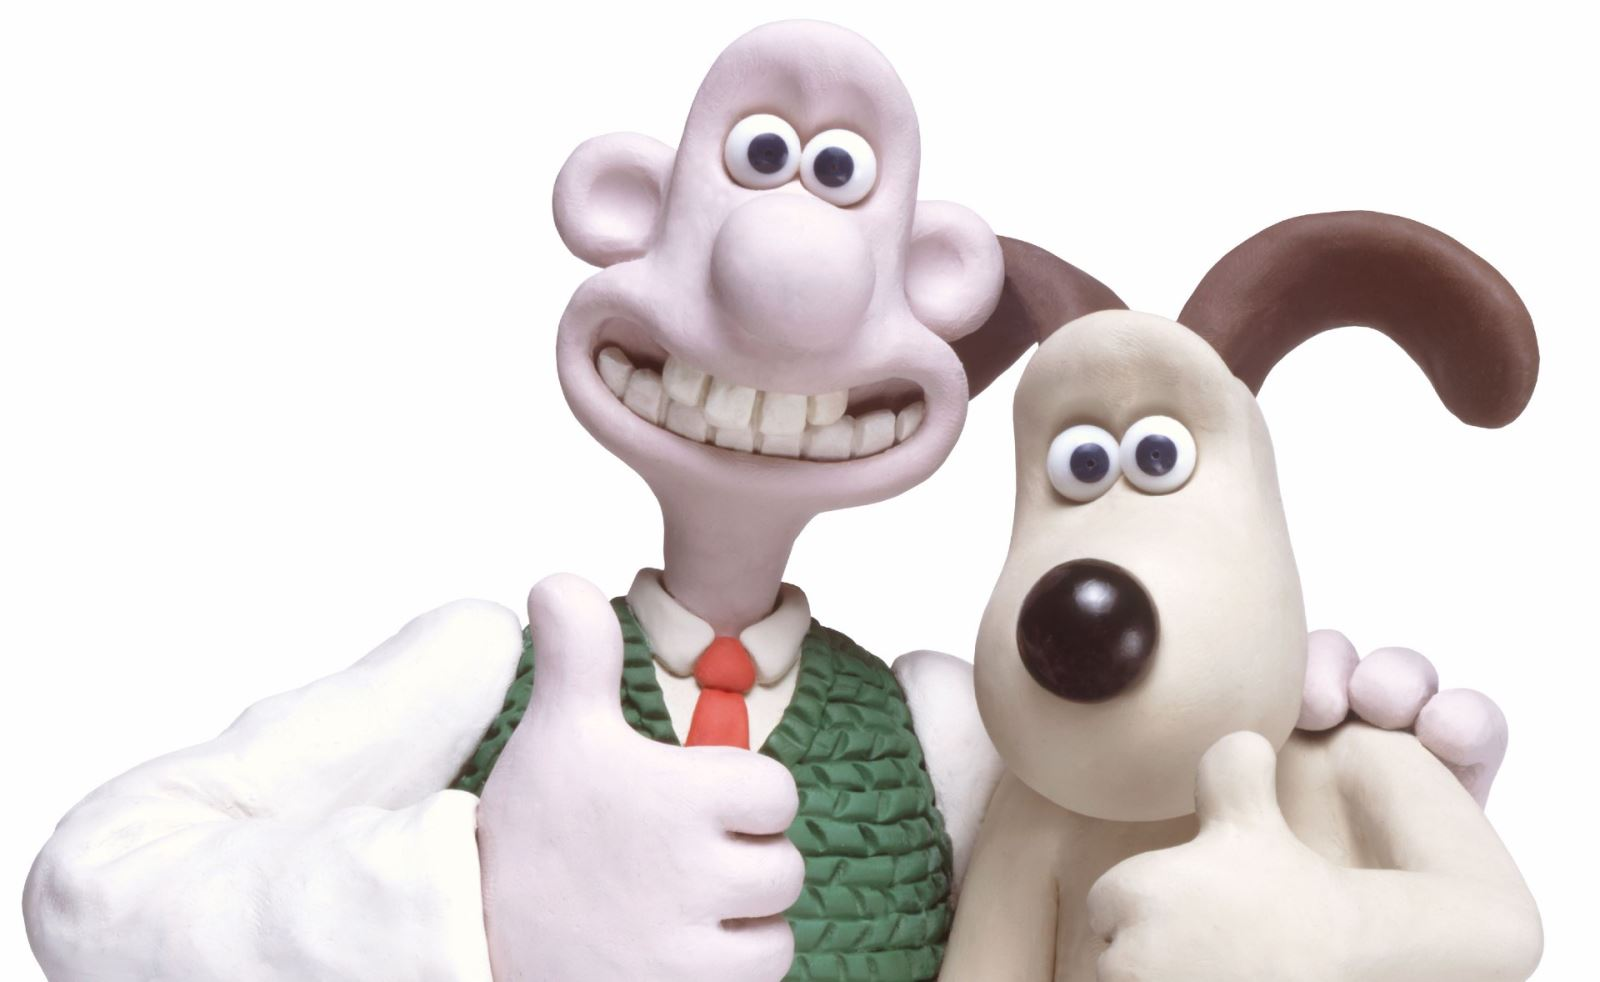 Wallace and Gromit - credit Aardman Animations